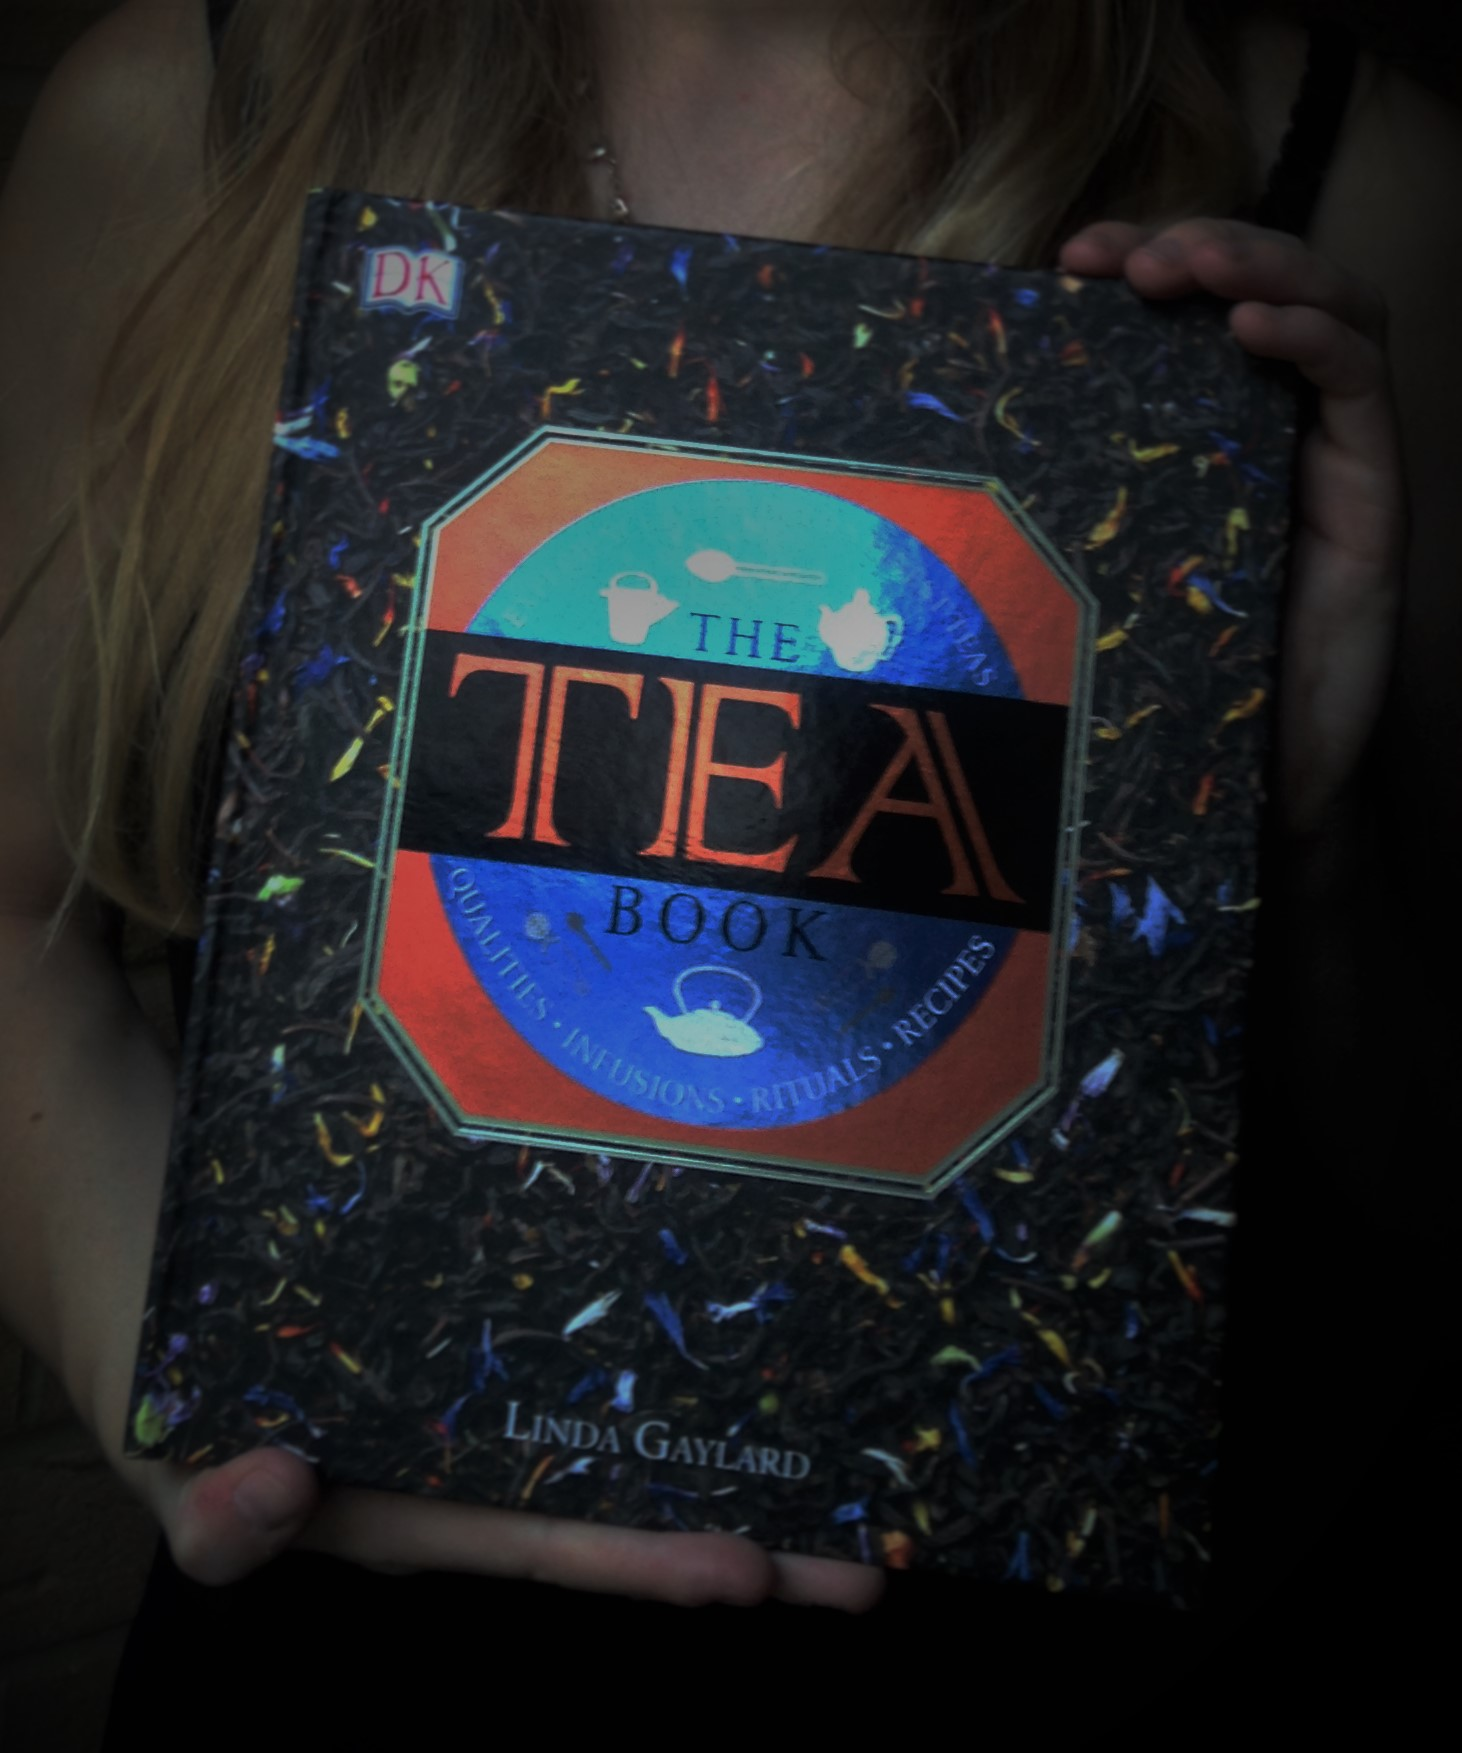 The Tea Book by Linda Gaylard